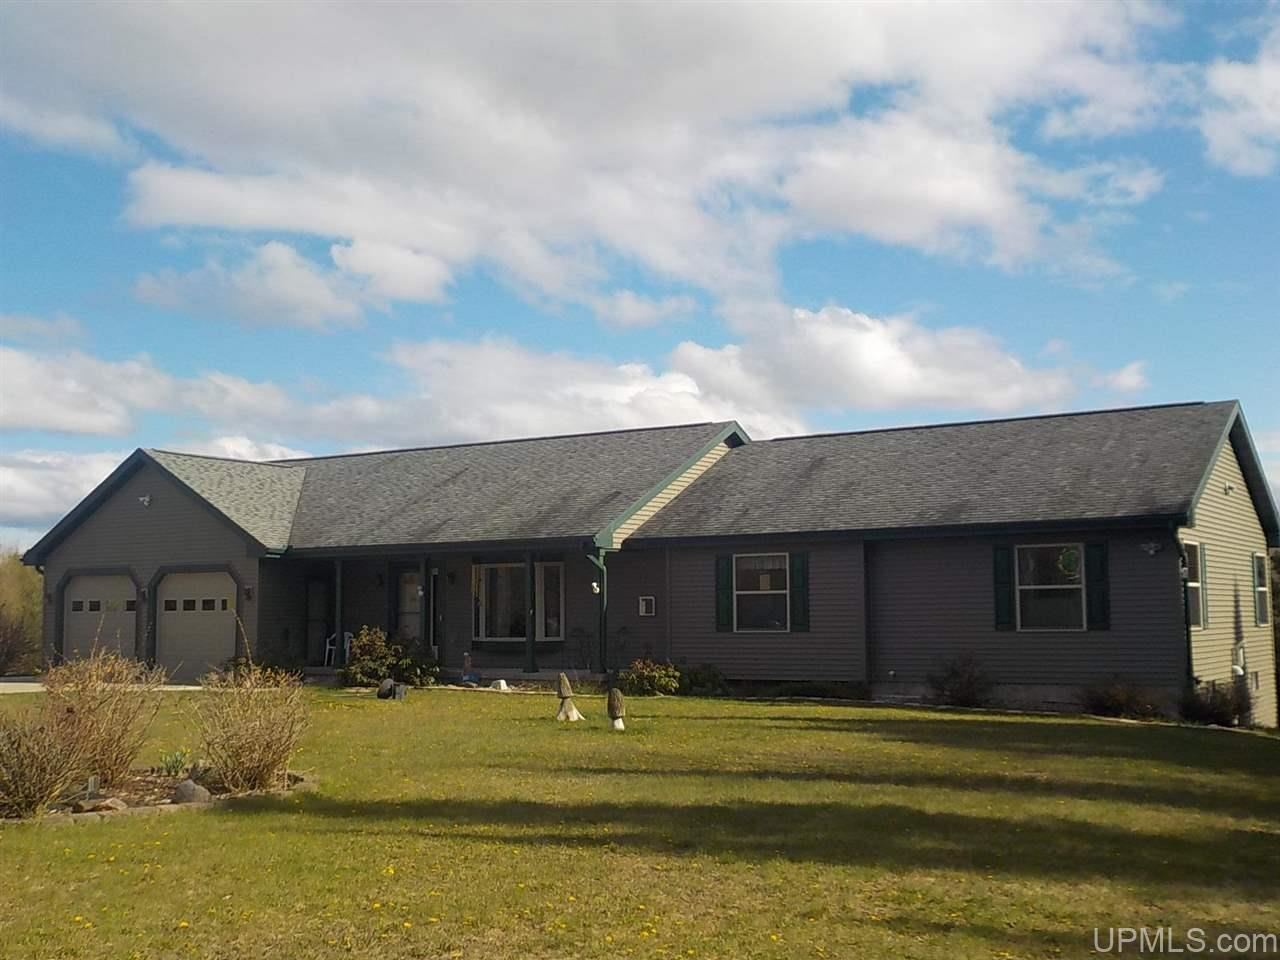 Photo of 6551 Caps Creek, Republic, MI 49879 (MLS # 1125338)